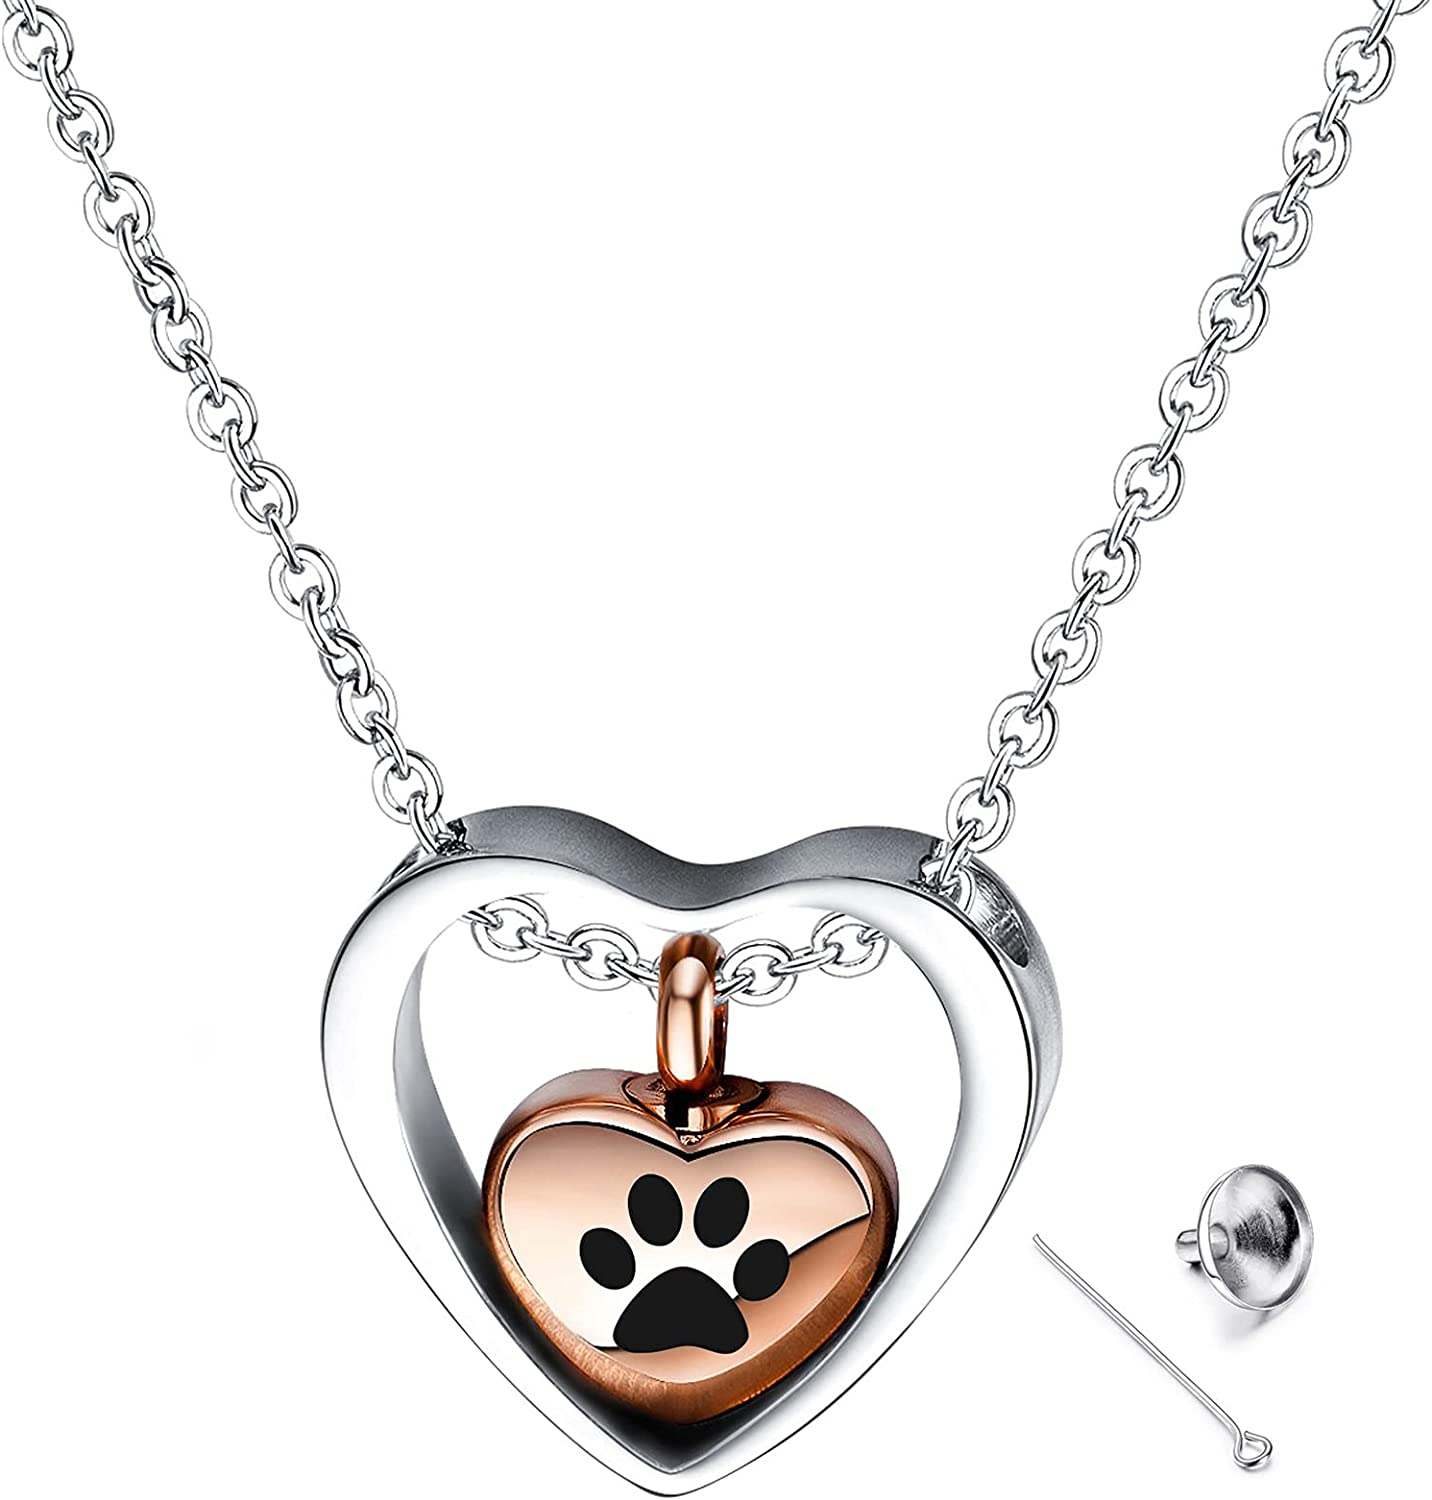 YOUFENG Love Heart Cremation Jewelry 14K Rose Gold Plated Urn Necklaces for Ashes Memorial Urn Locket Stainless Steel Keepsake Jewelry